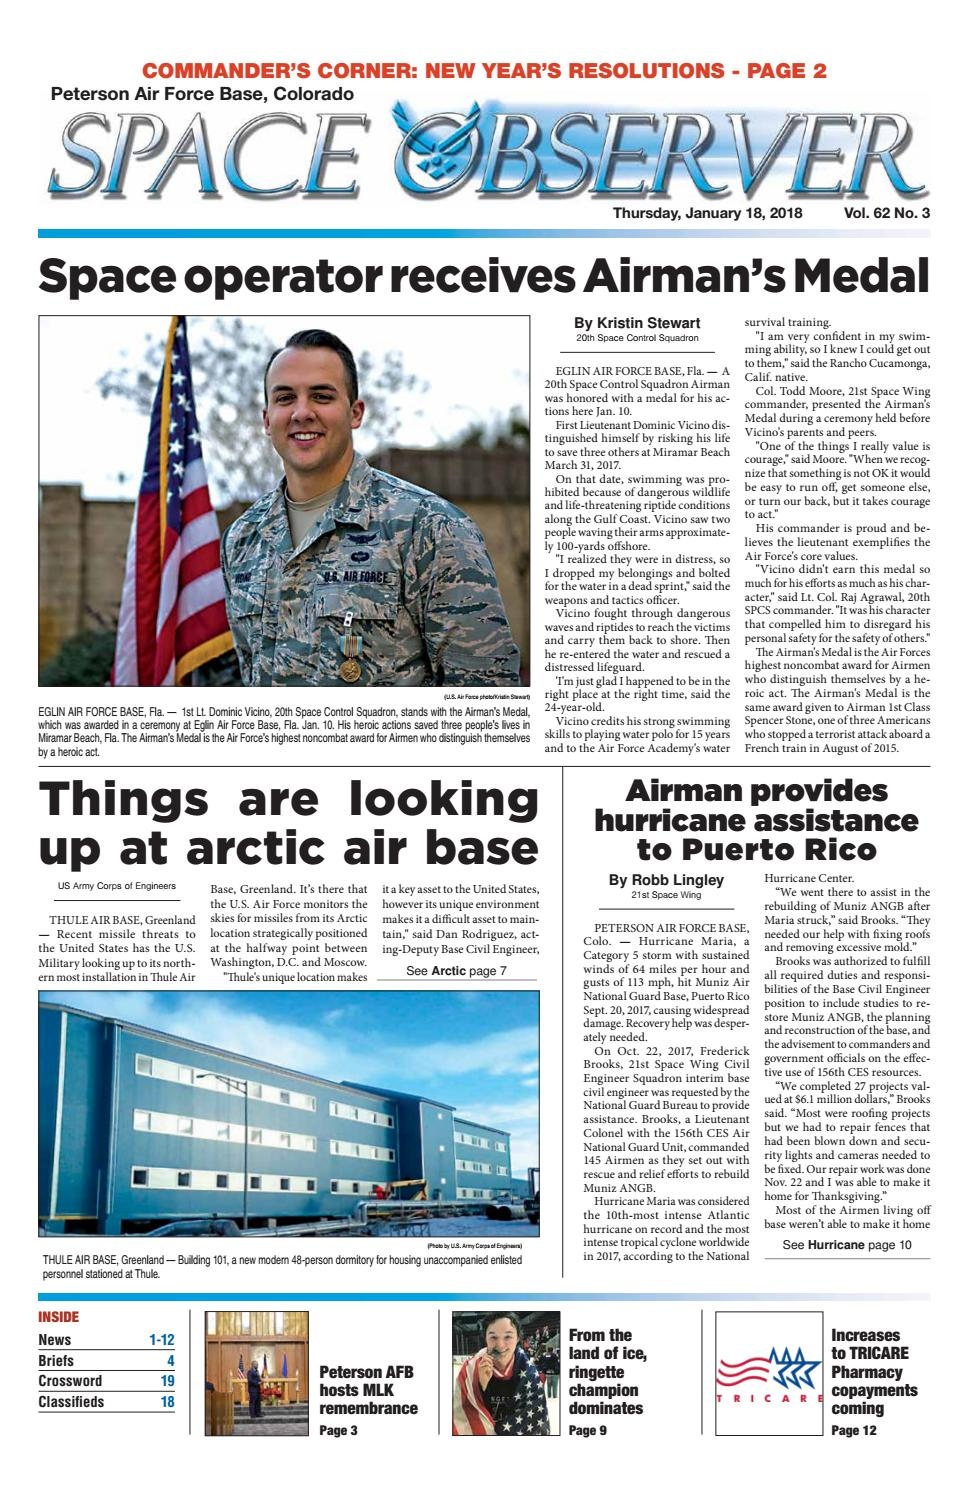 Peterson space observer january 18